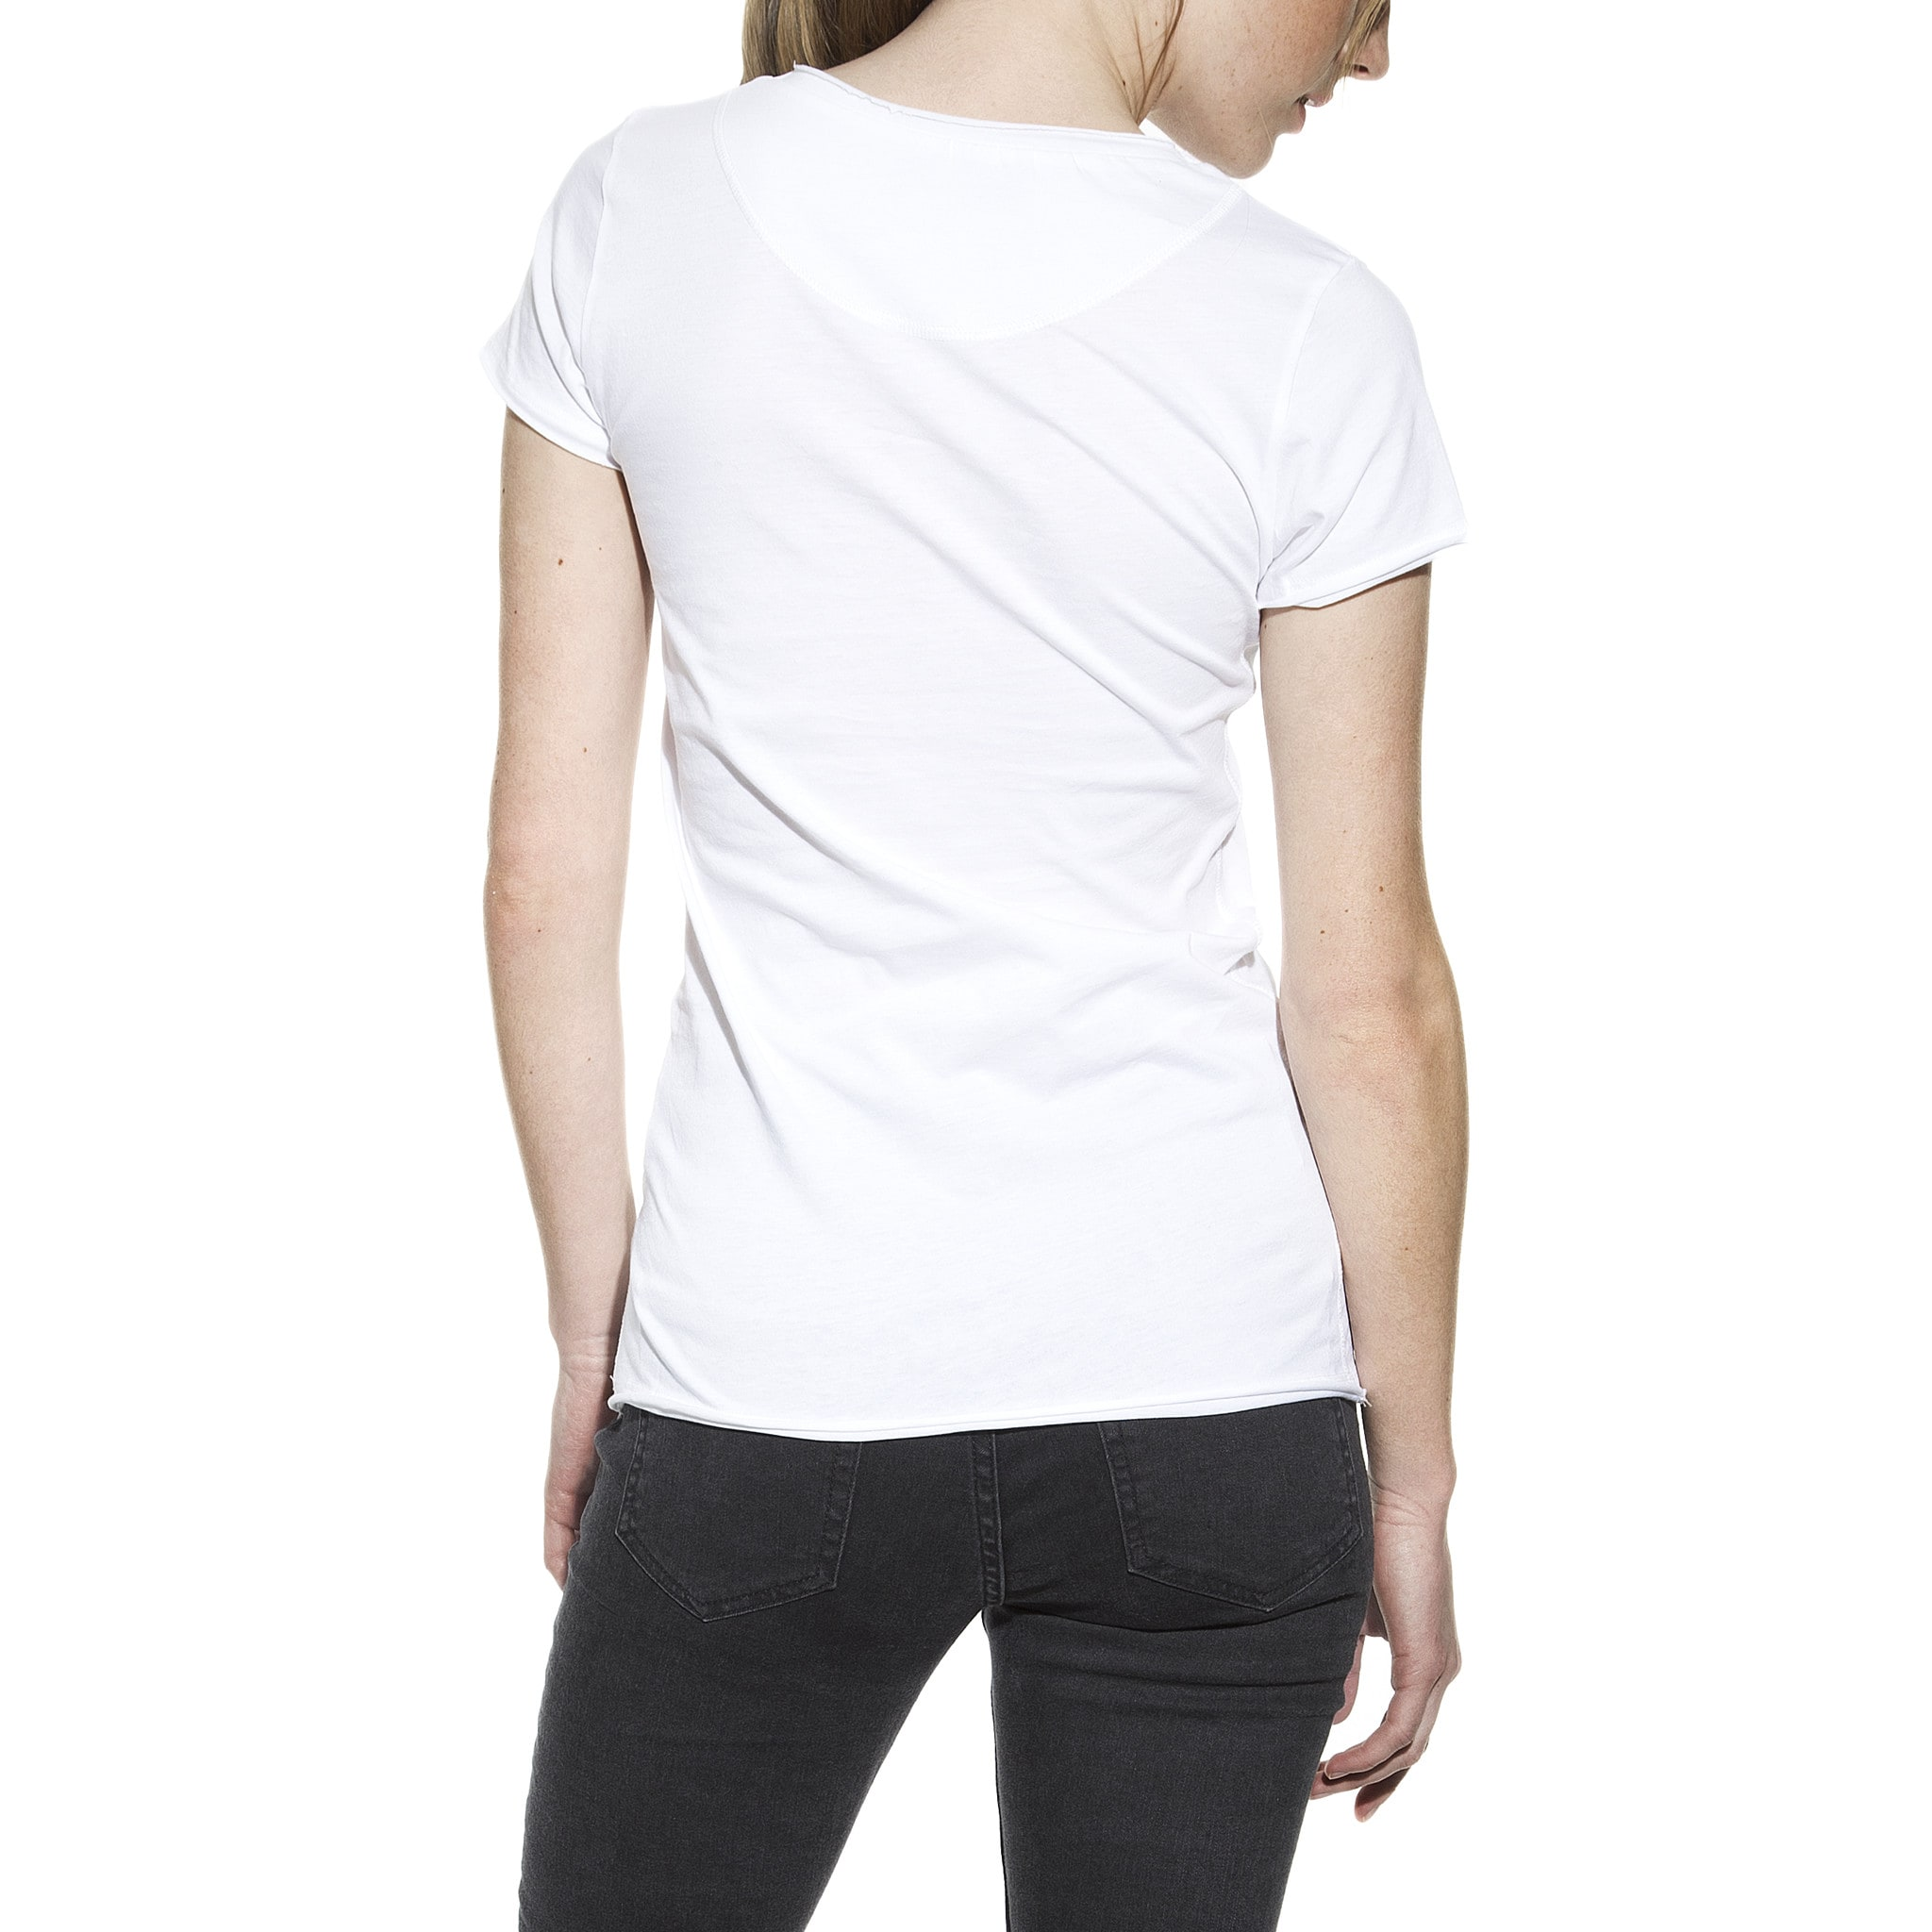 603102_Woman_Crew-Neck_relaxed_white_3